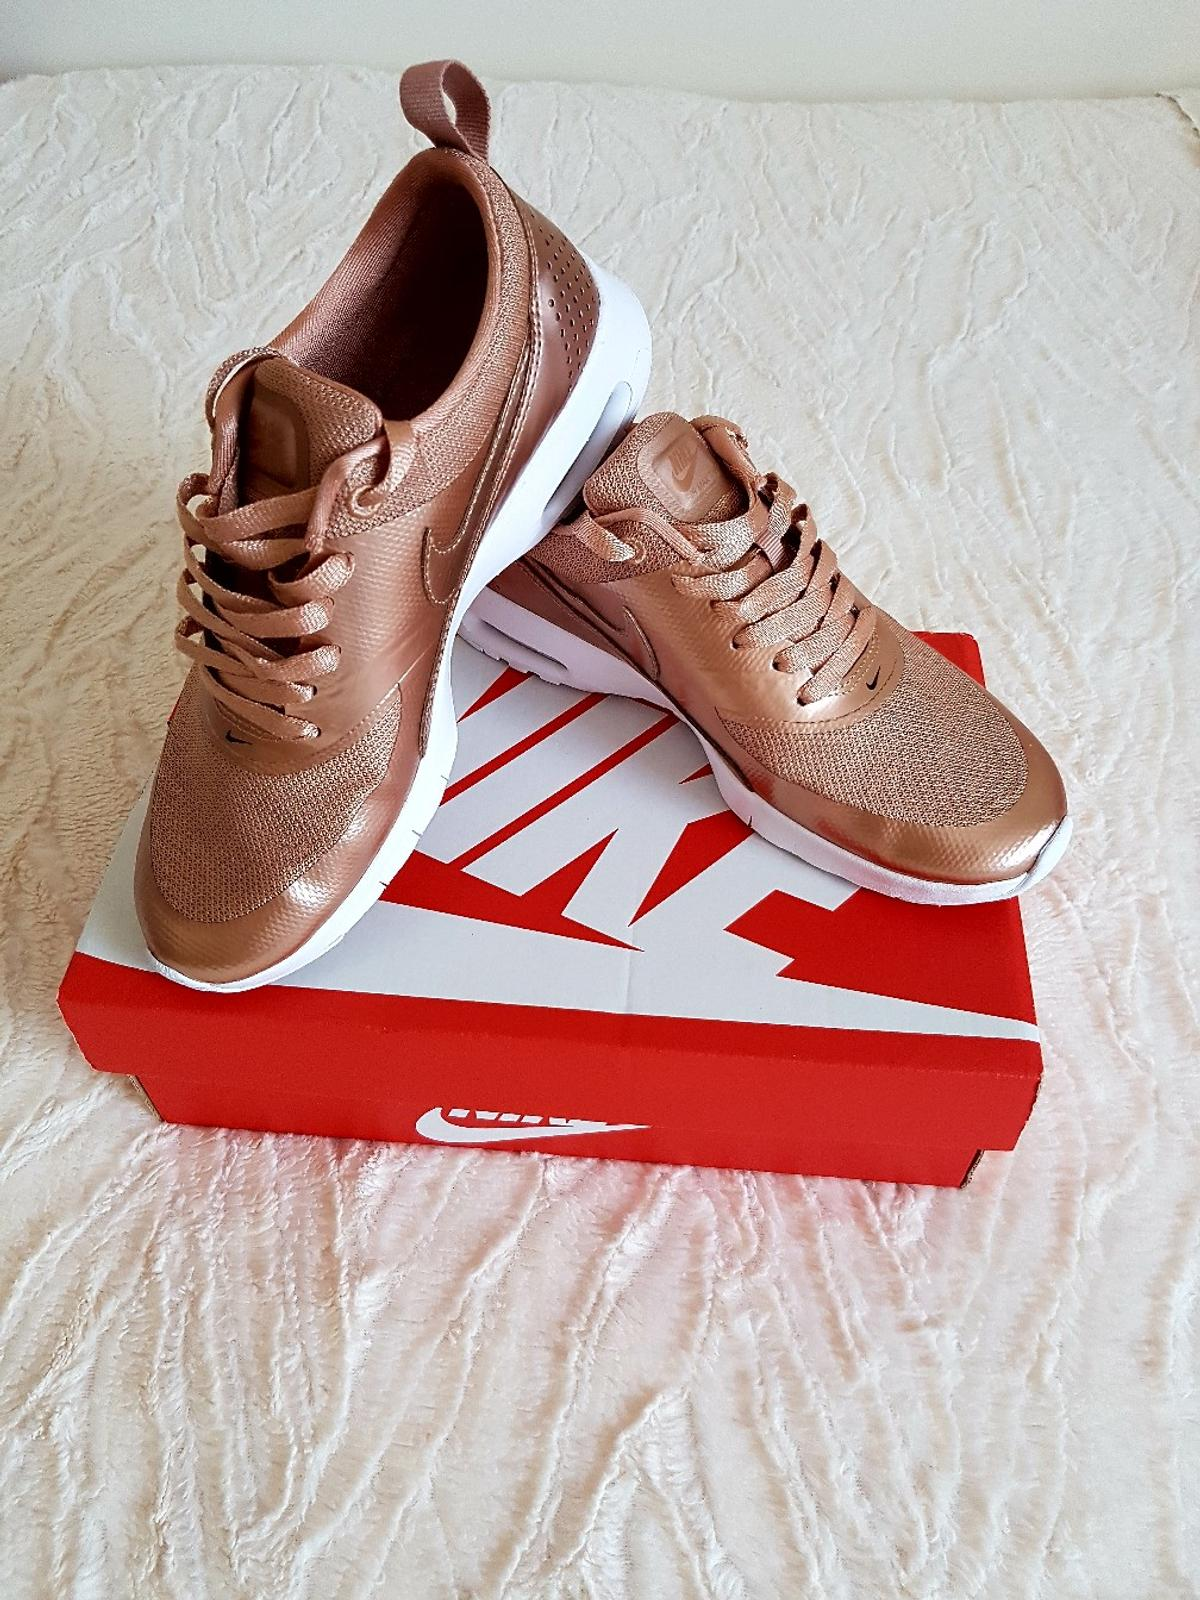 4f1861163104 Nike Air Max Thea Limited Edition rose gold in WA8 Widnes for £70.00 ...